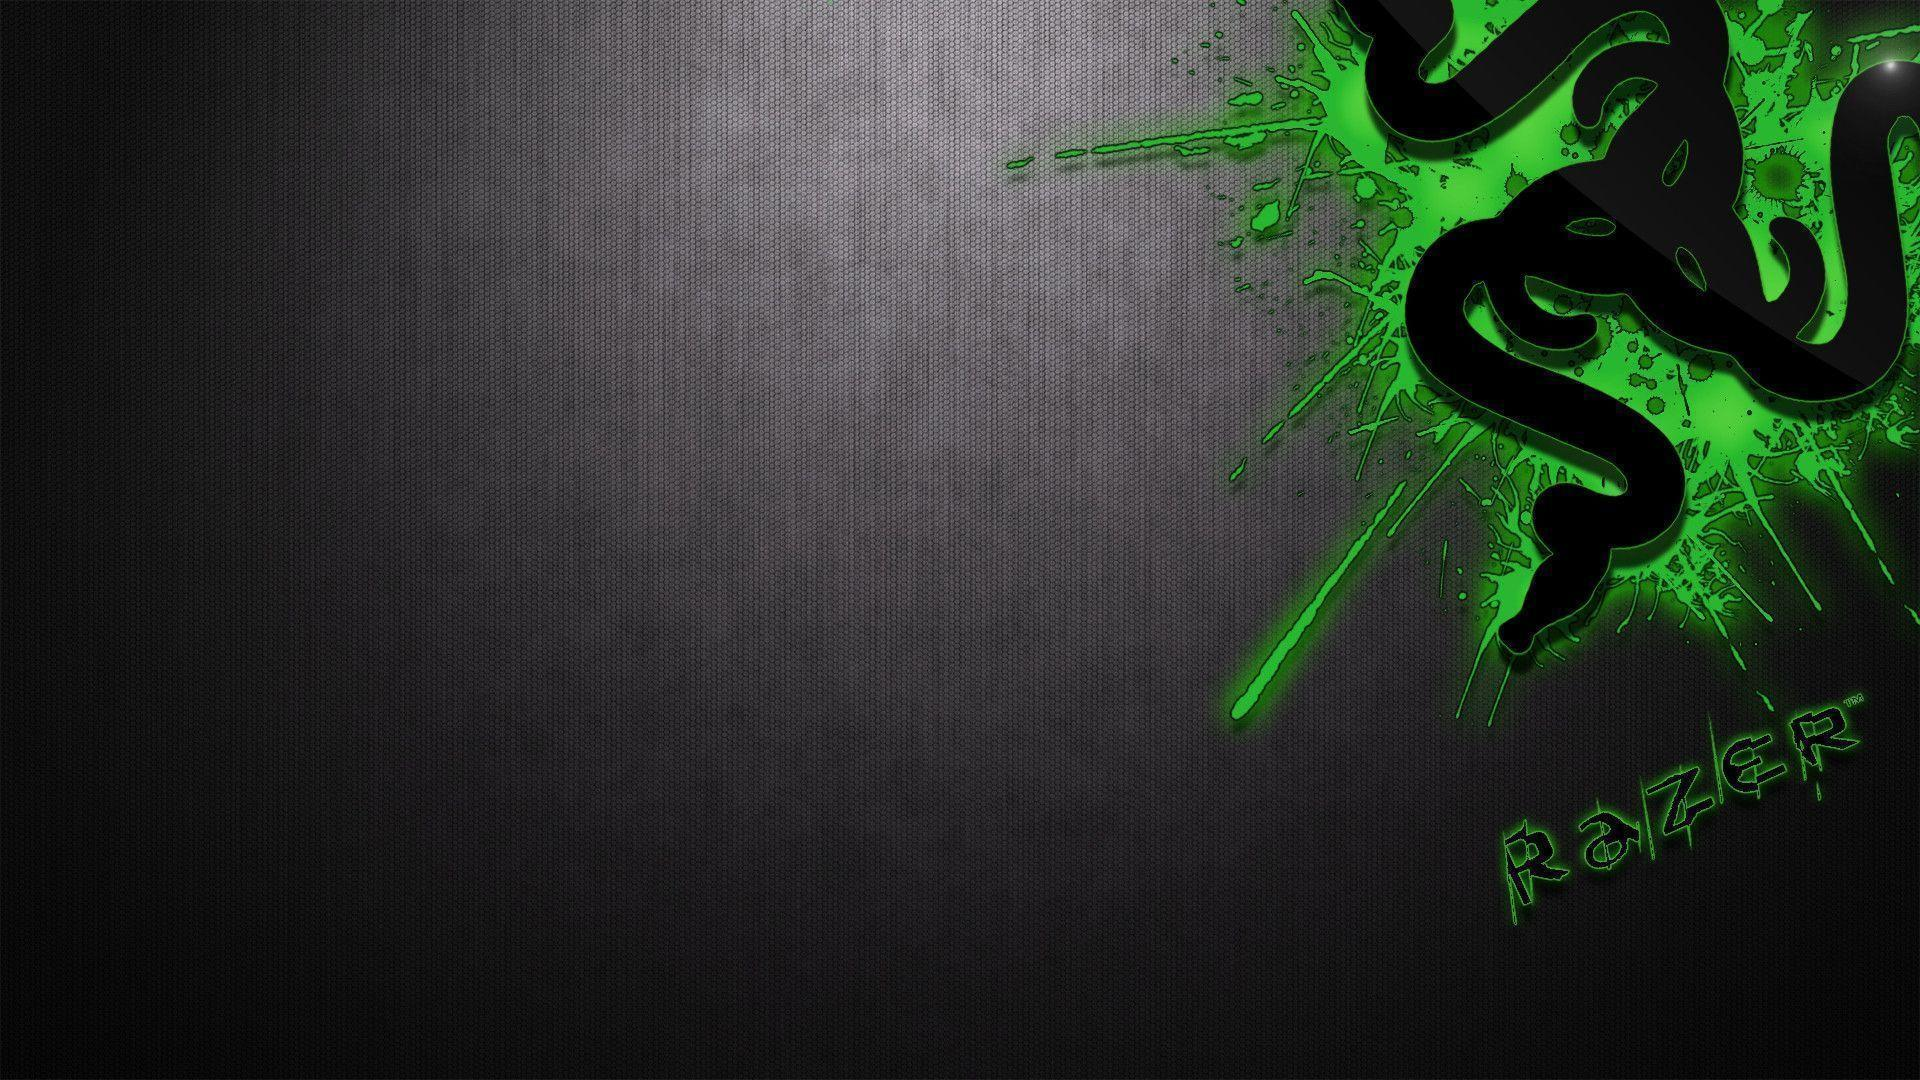 Razer Green 1920x1080 Wallpapers Best Wallpapers Website Pictures